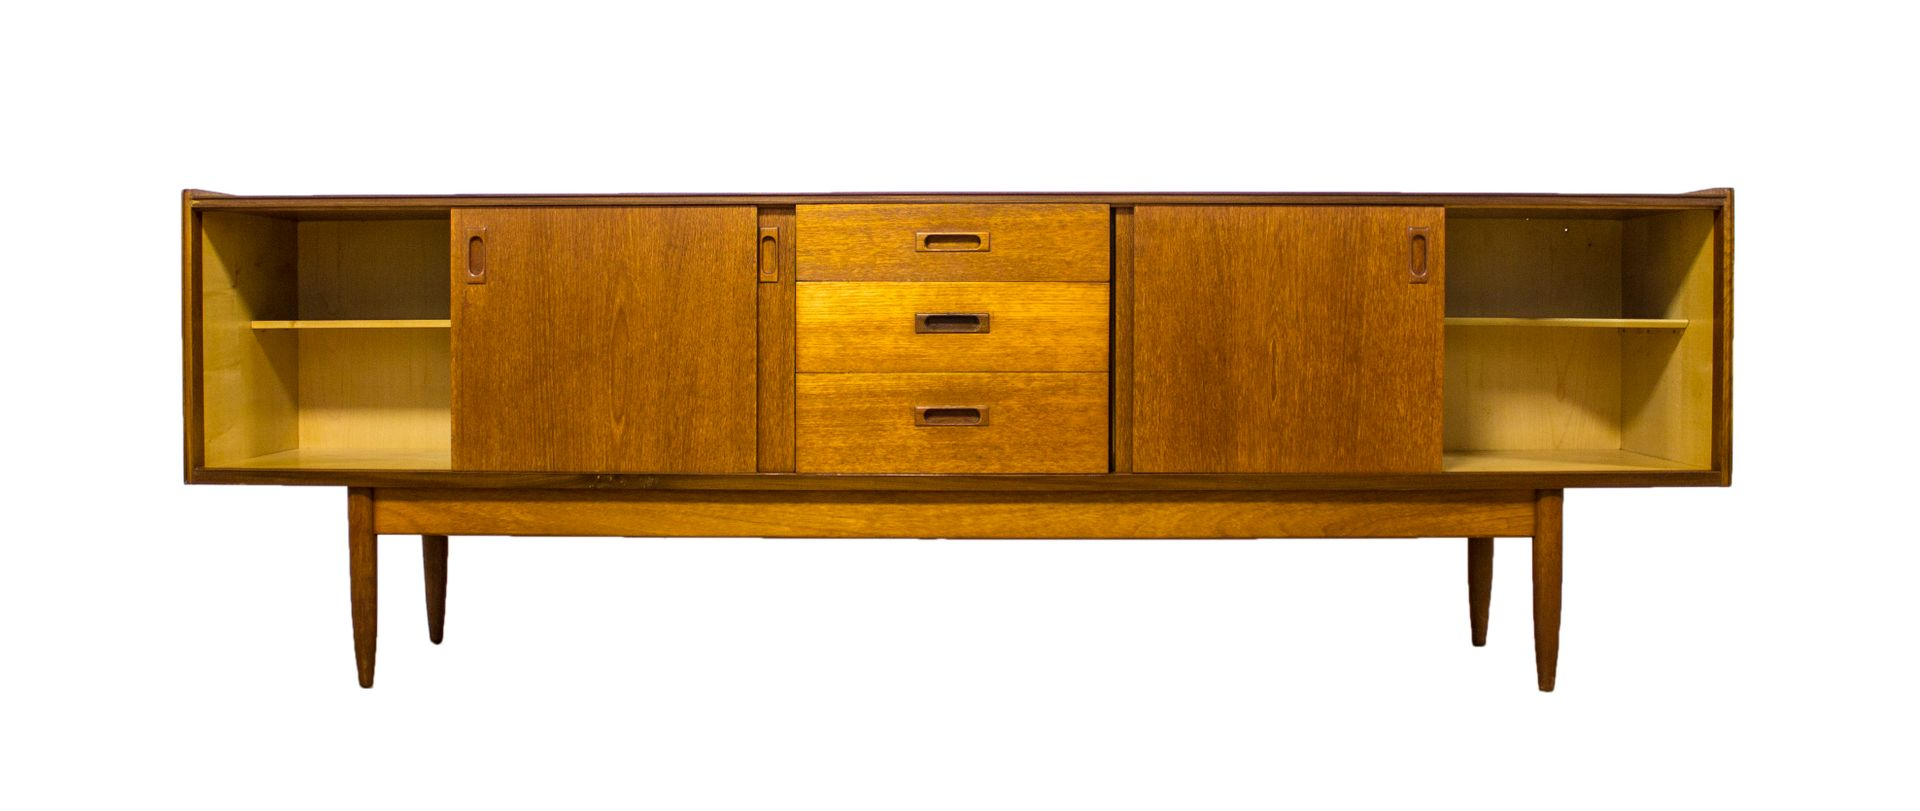 d nisches vintage teak sideboard bei pamono kaufen. Black Bedroom Furniture Sets. Home Design Ideas